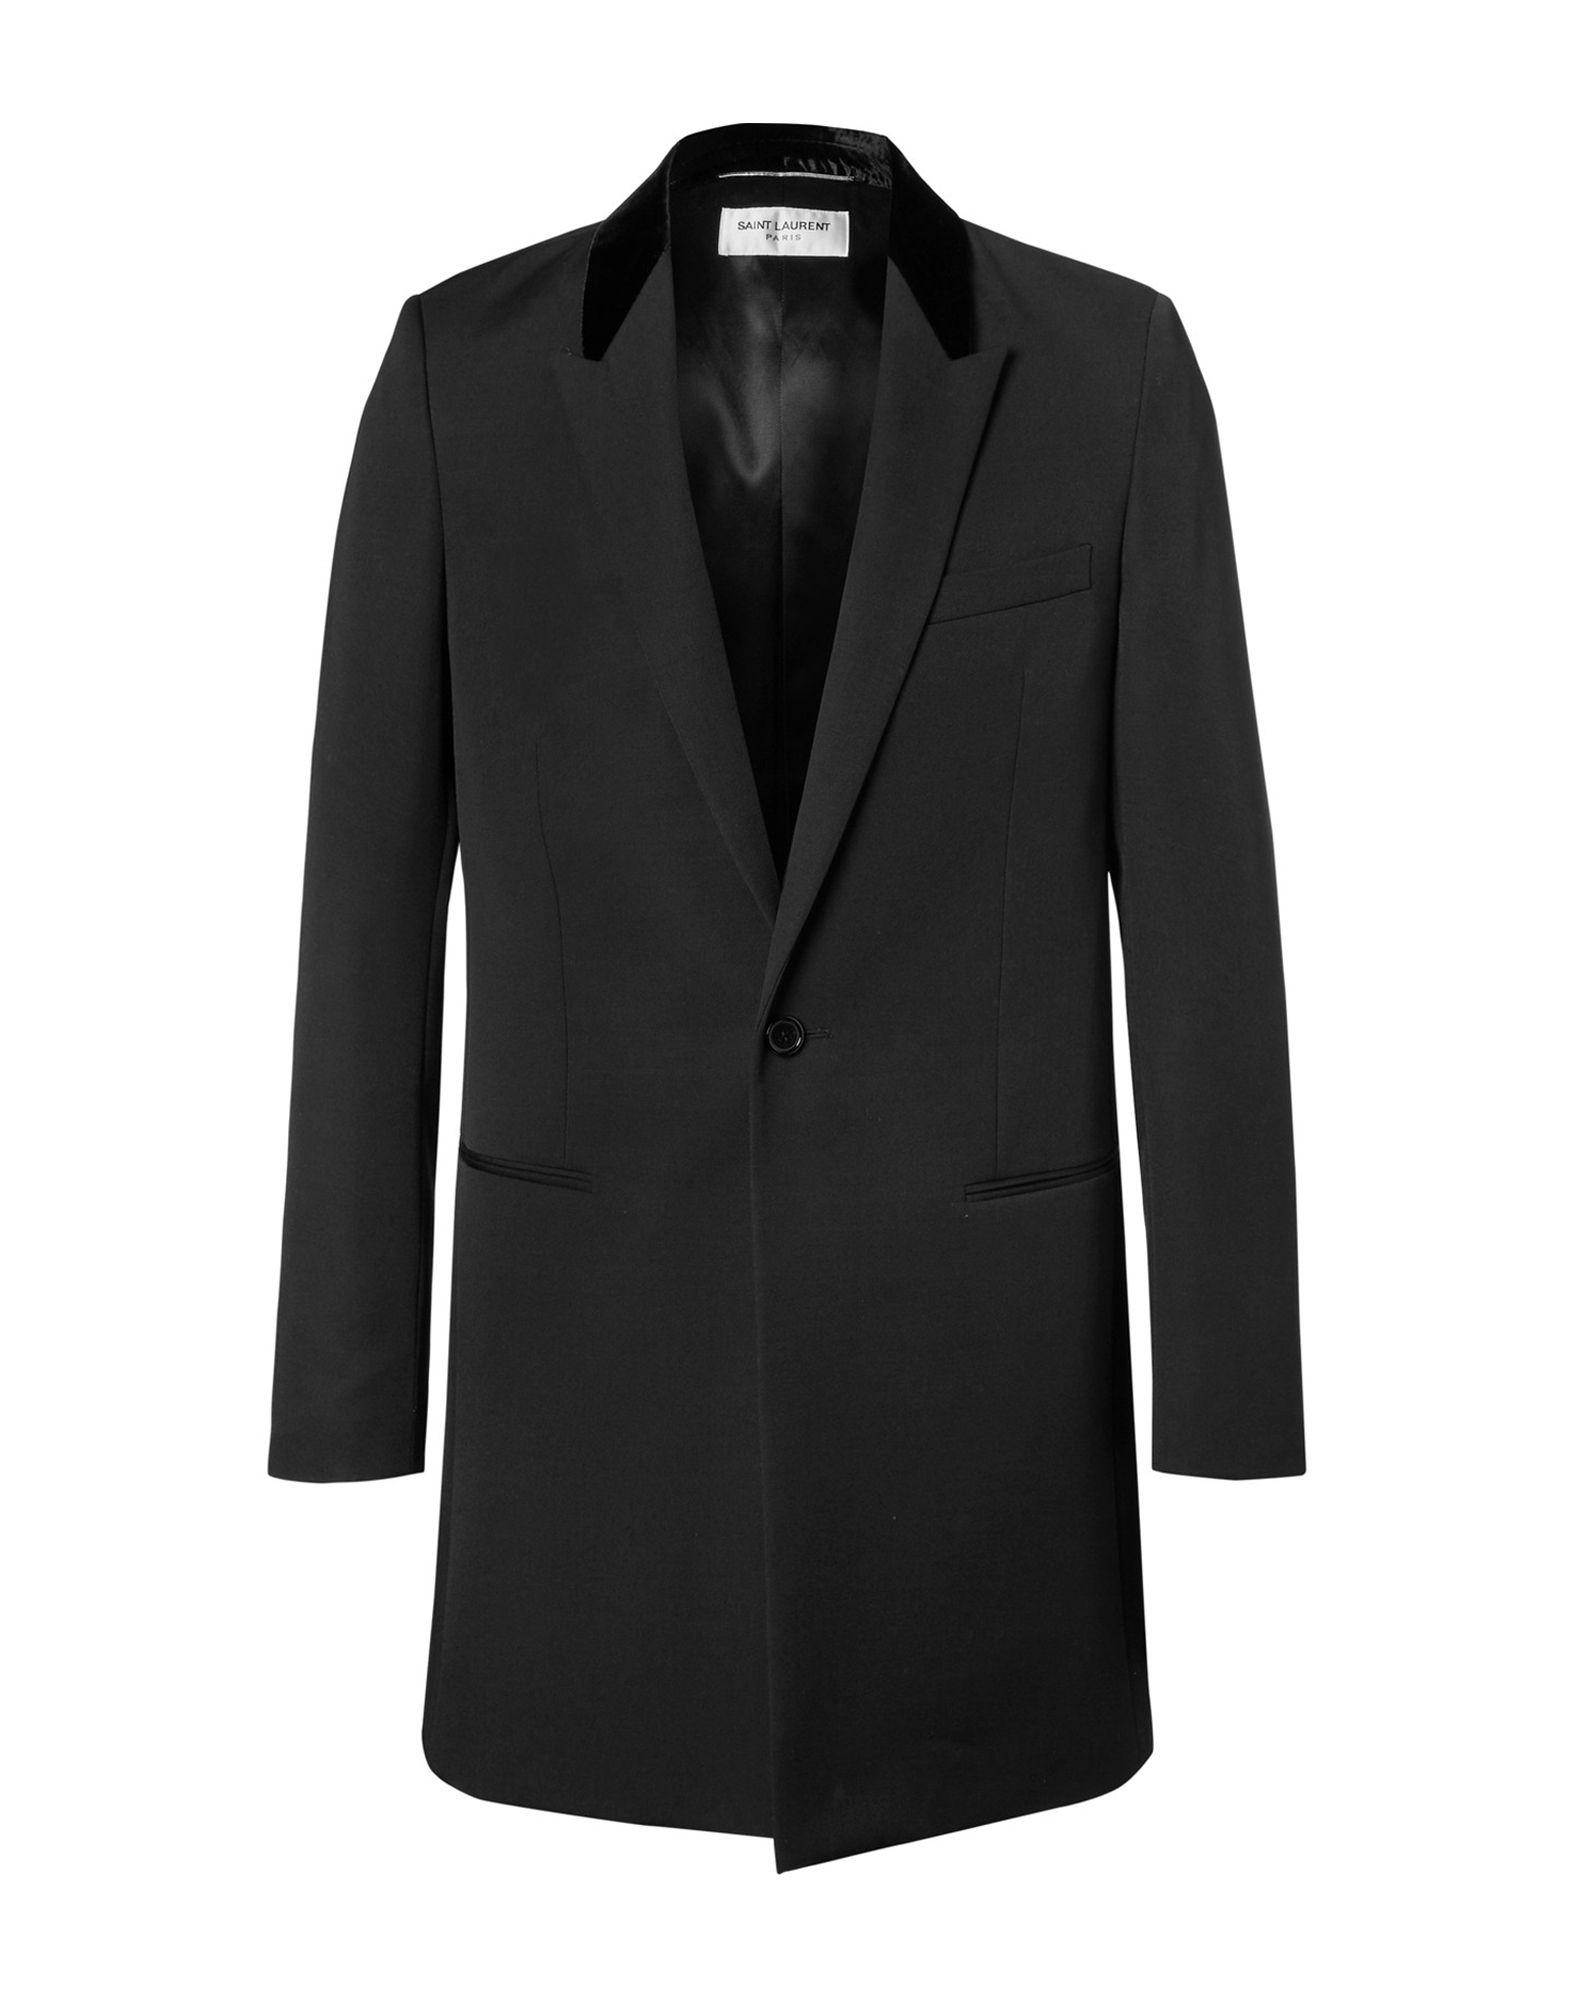 16968086a579a Lyst - Saint Laurent Overcoat in Black for Men